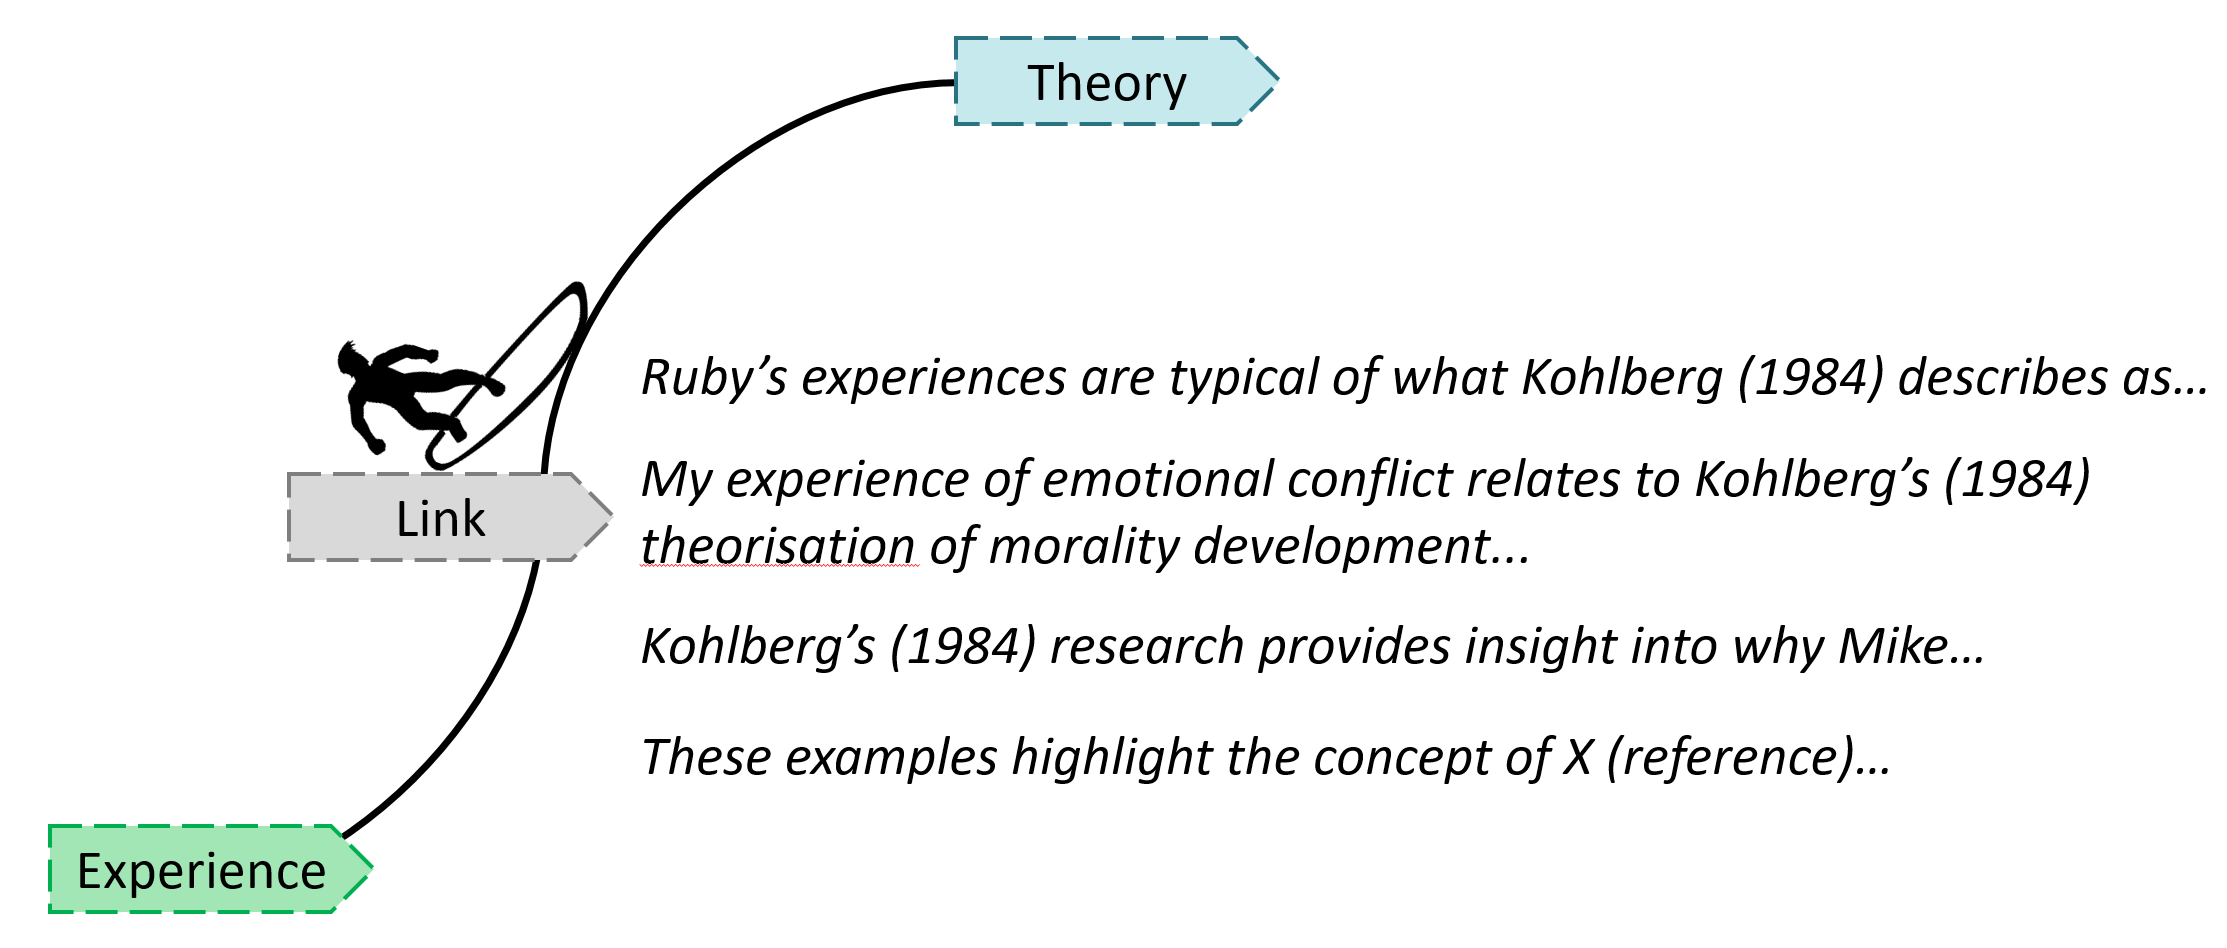 Linking experience to theory